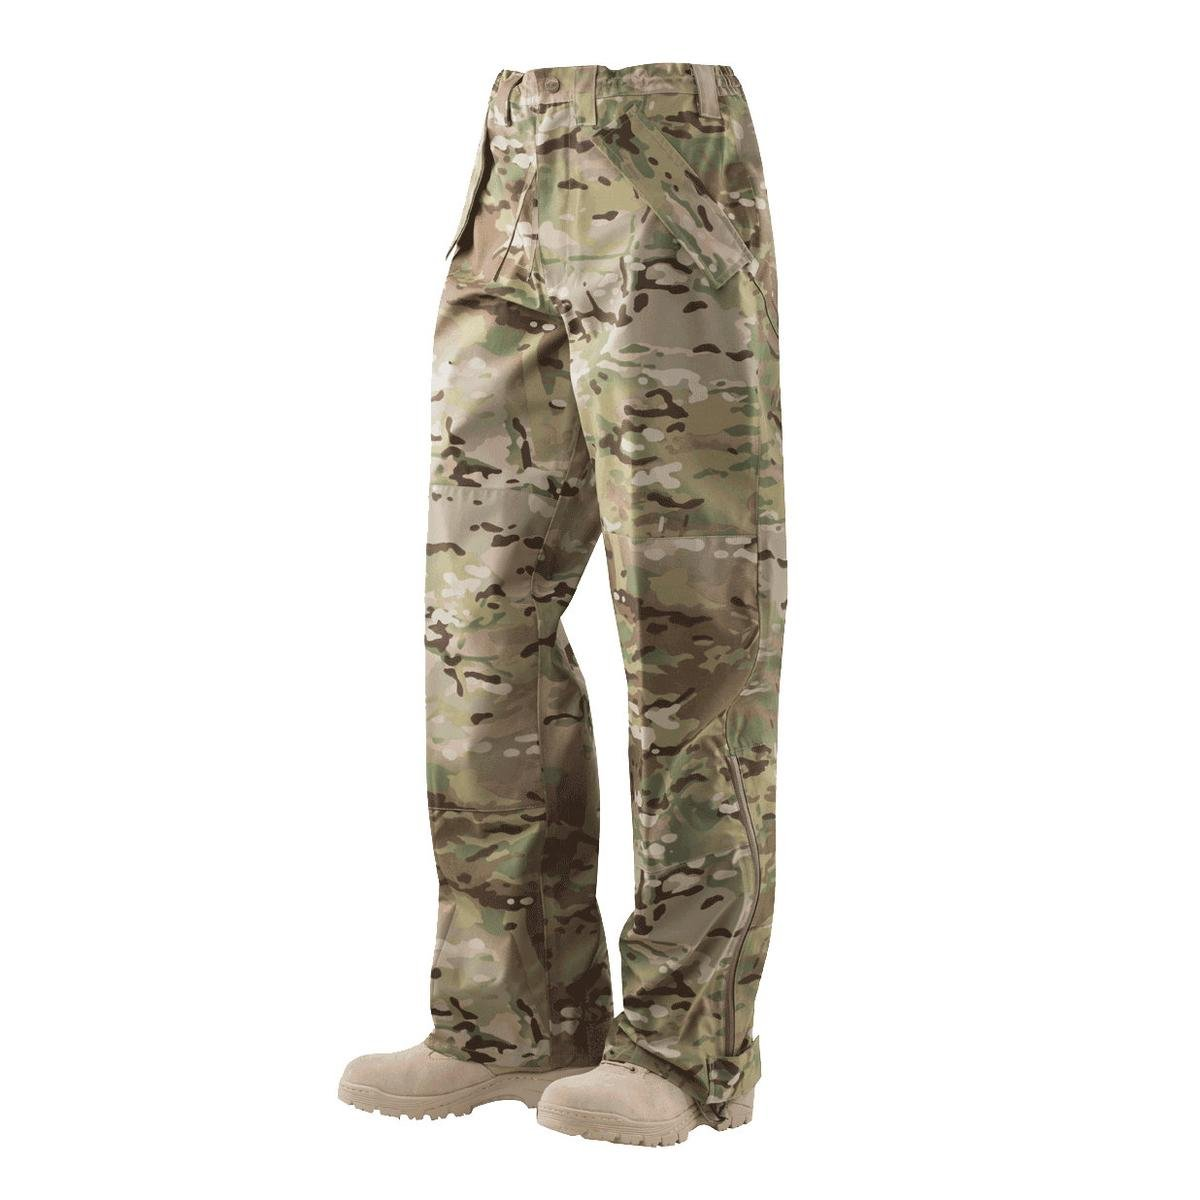 Tru-Spec Men's H2o Proof ECWCS Camo Trousers Camouflage Small